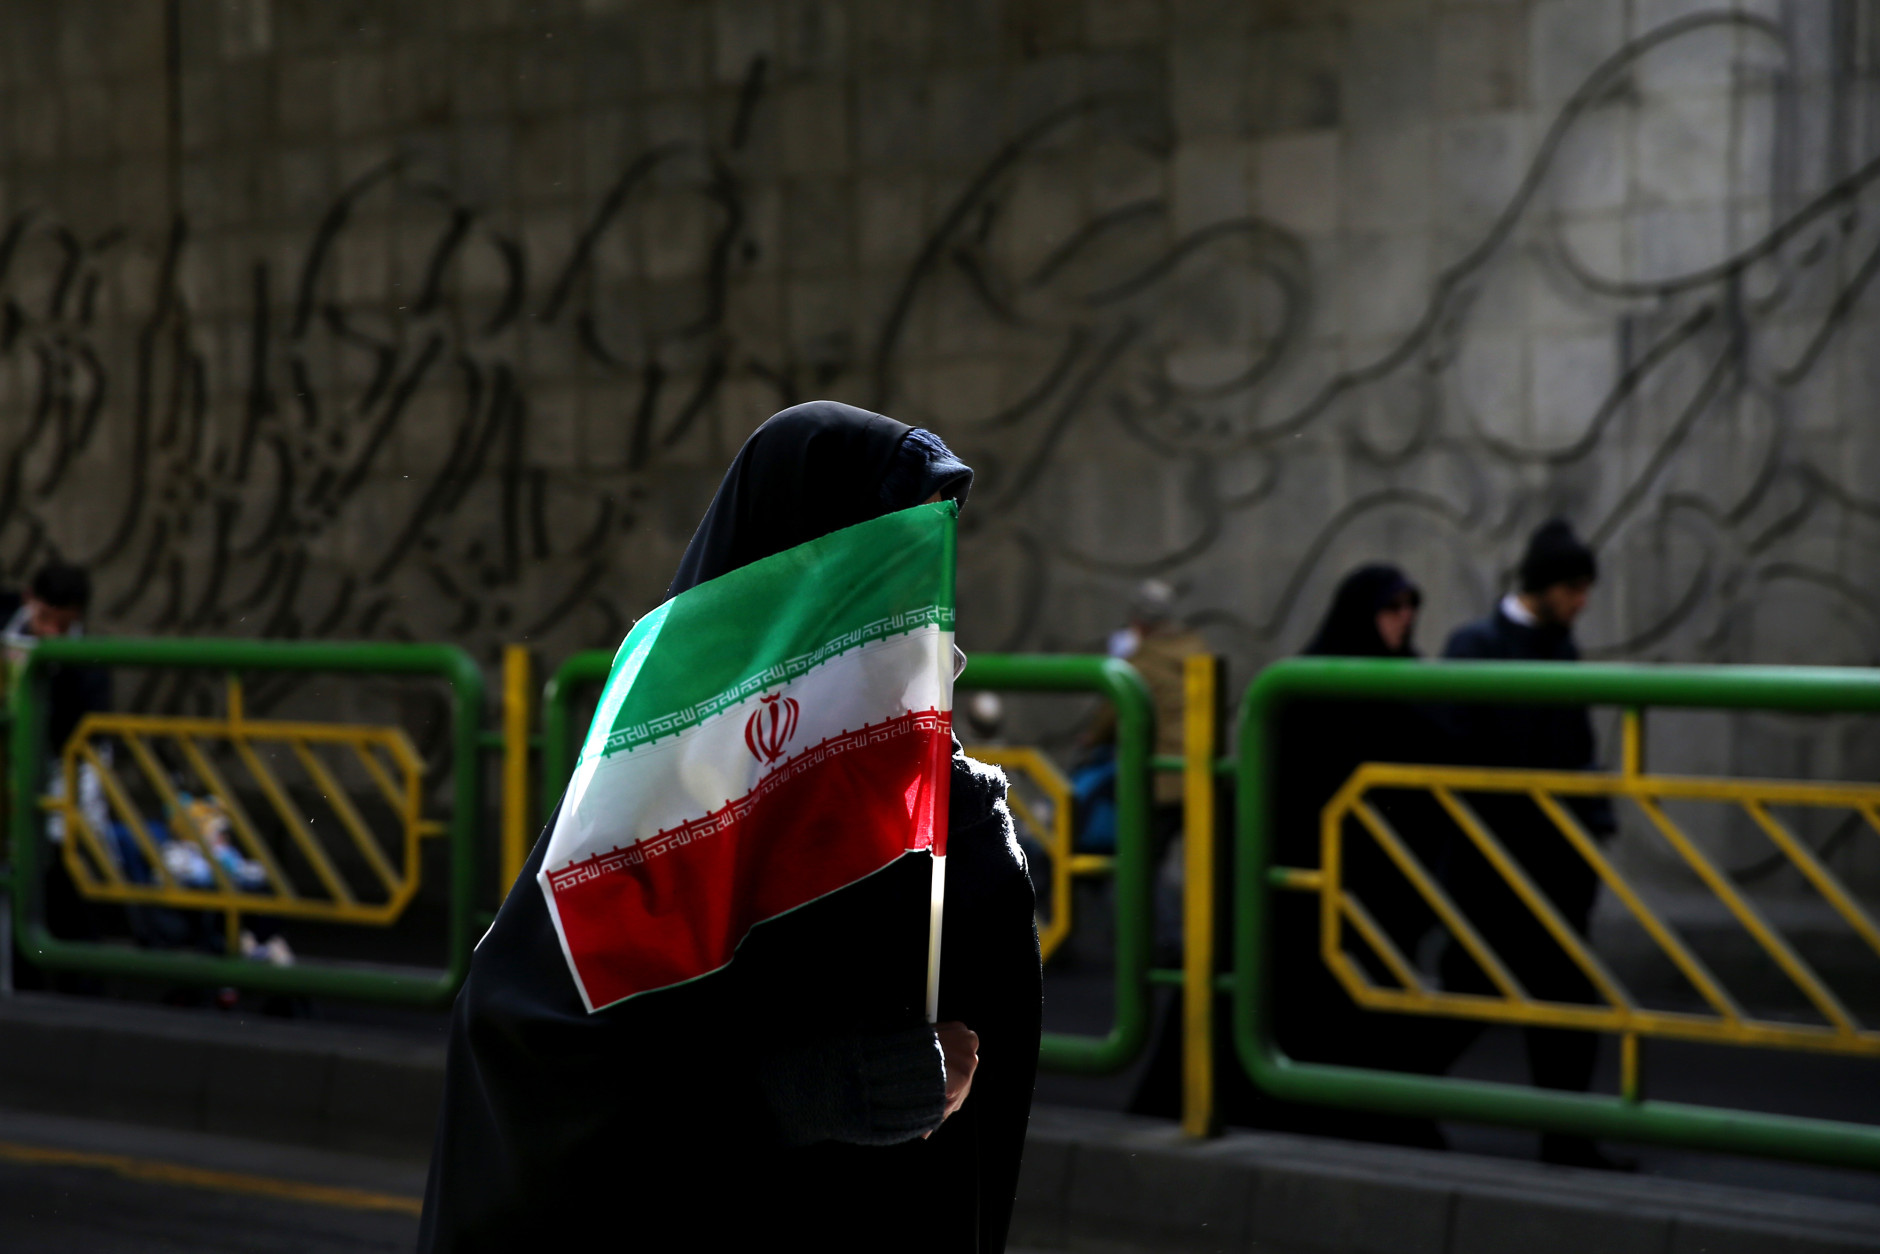 FILE - In this Thursday, Feb. 11, 2016 file photo, an Iranian woman holds the national flag during a rally commemorating the 37th anniversary of the Islamic revolution, in Tehran, Iran. The nationwide rallies commemorate Feb. 11, 1979, when followers of Ayatollah Khomeini ousted U.S.-backed Shah Mohammad Reza Pahlavi. (AP Photo/Ebrahim Noroozi)